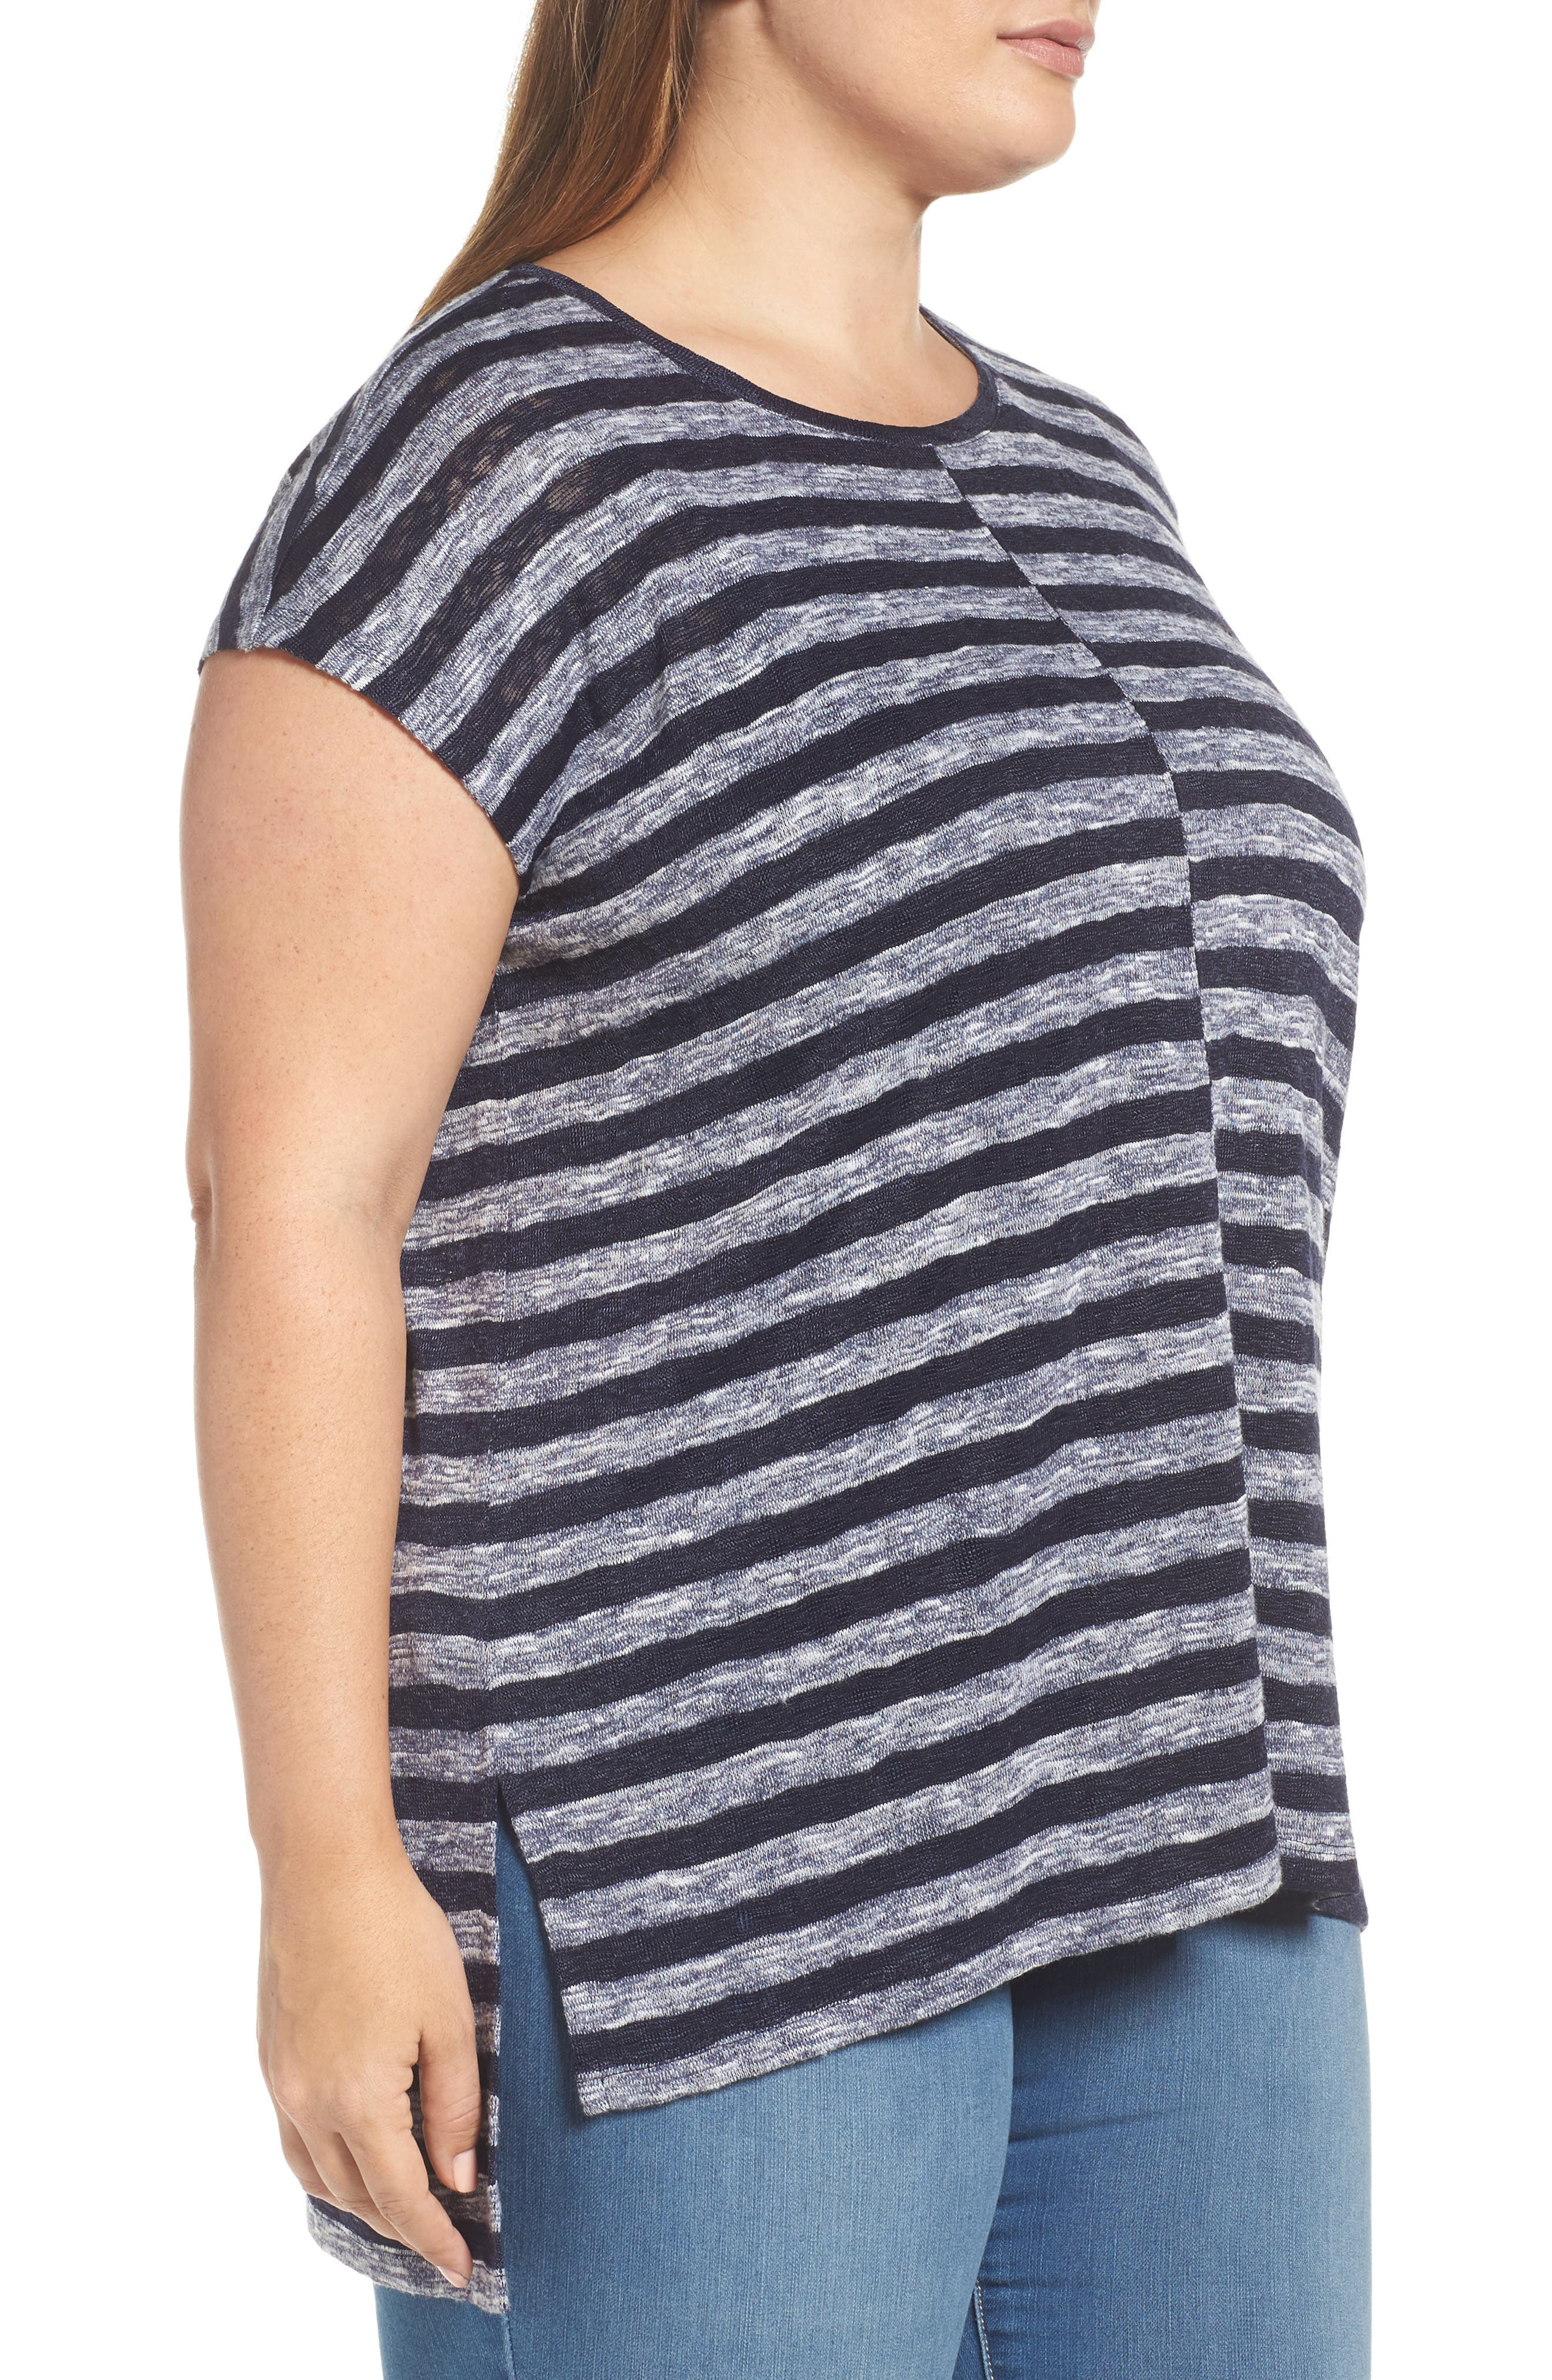 Alternate Image 3  - Two by Vince Camuto Uneven Stripe High/Low Tee (Plus Size)